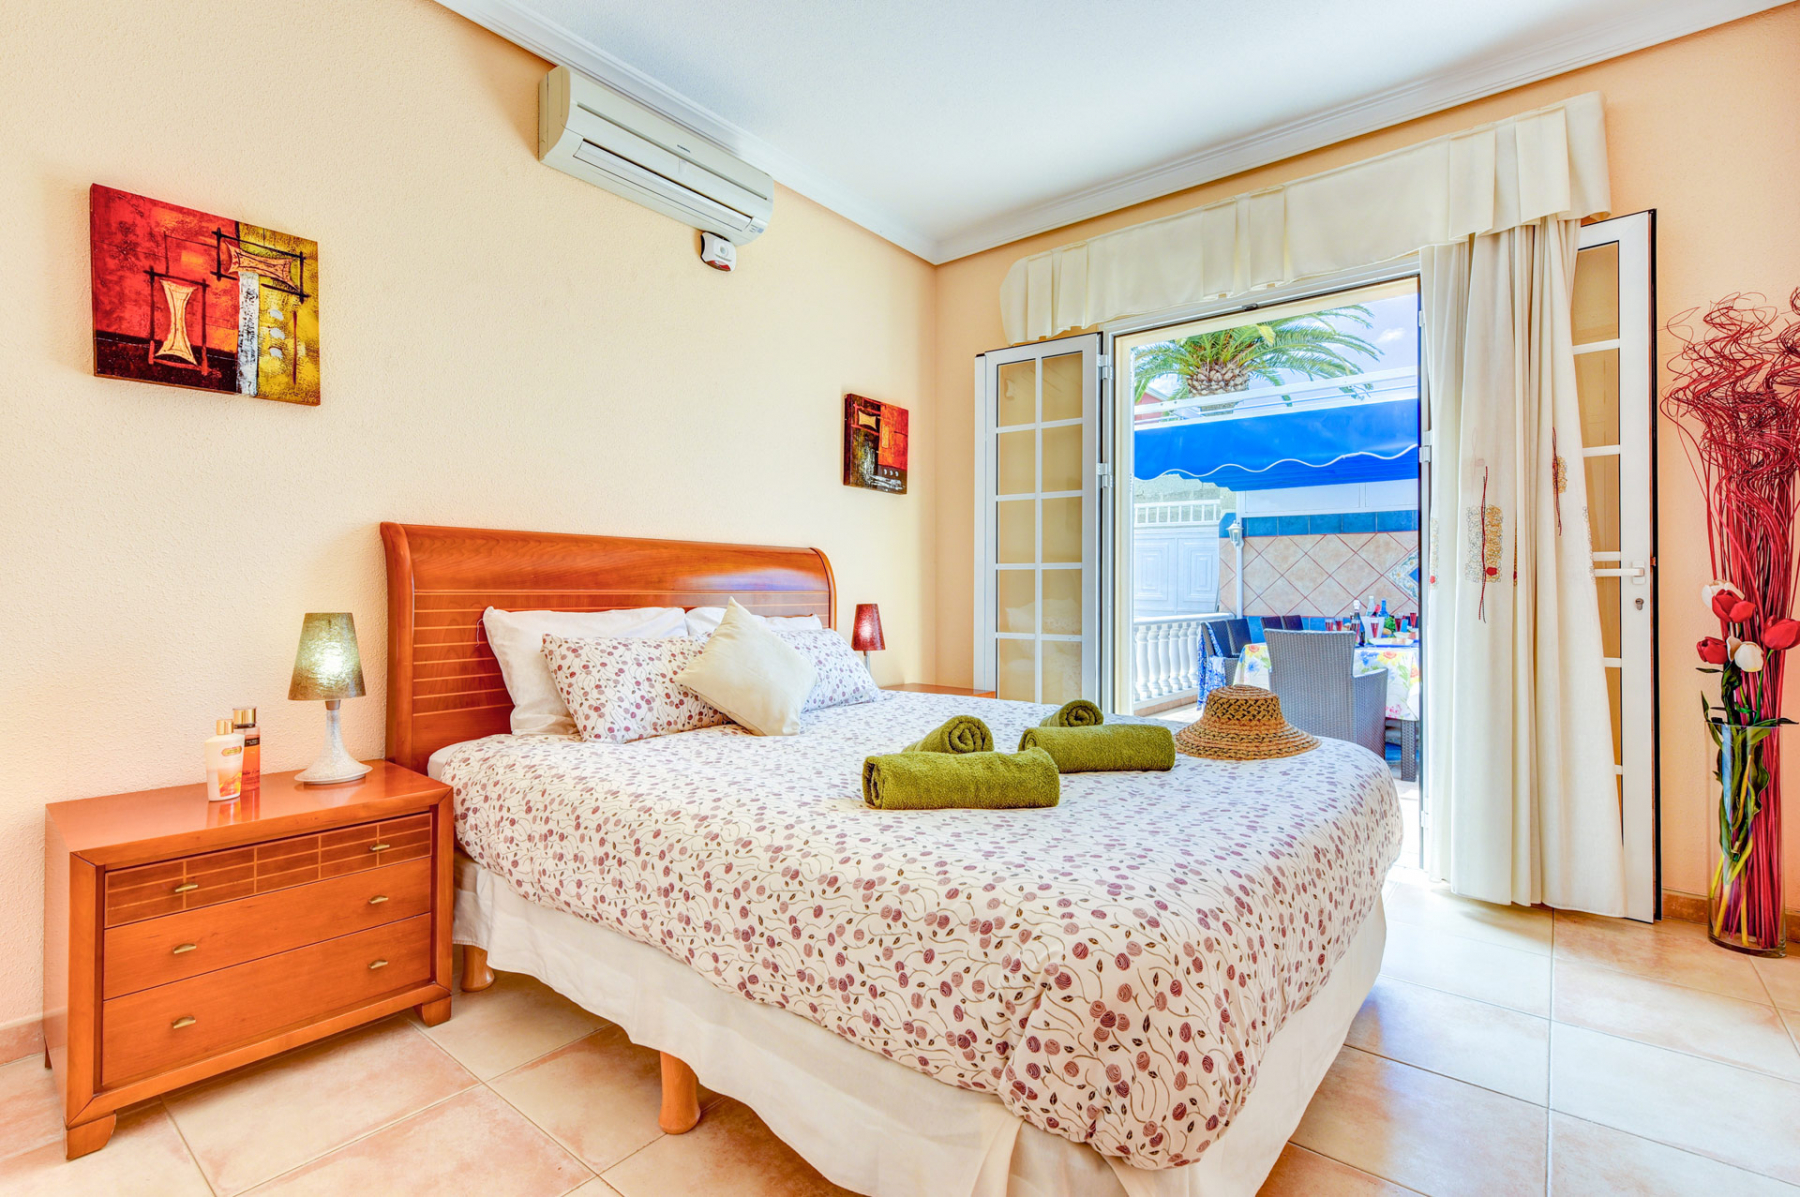 Properties for Sale in Tenerife, Canary Islands, Spain | SylkWayStar Real Estate. Villa 5 bedrooms Madroñal. Image-25088